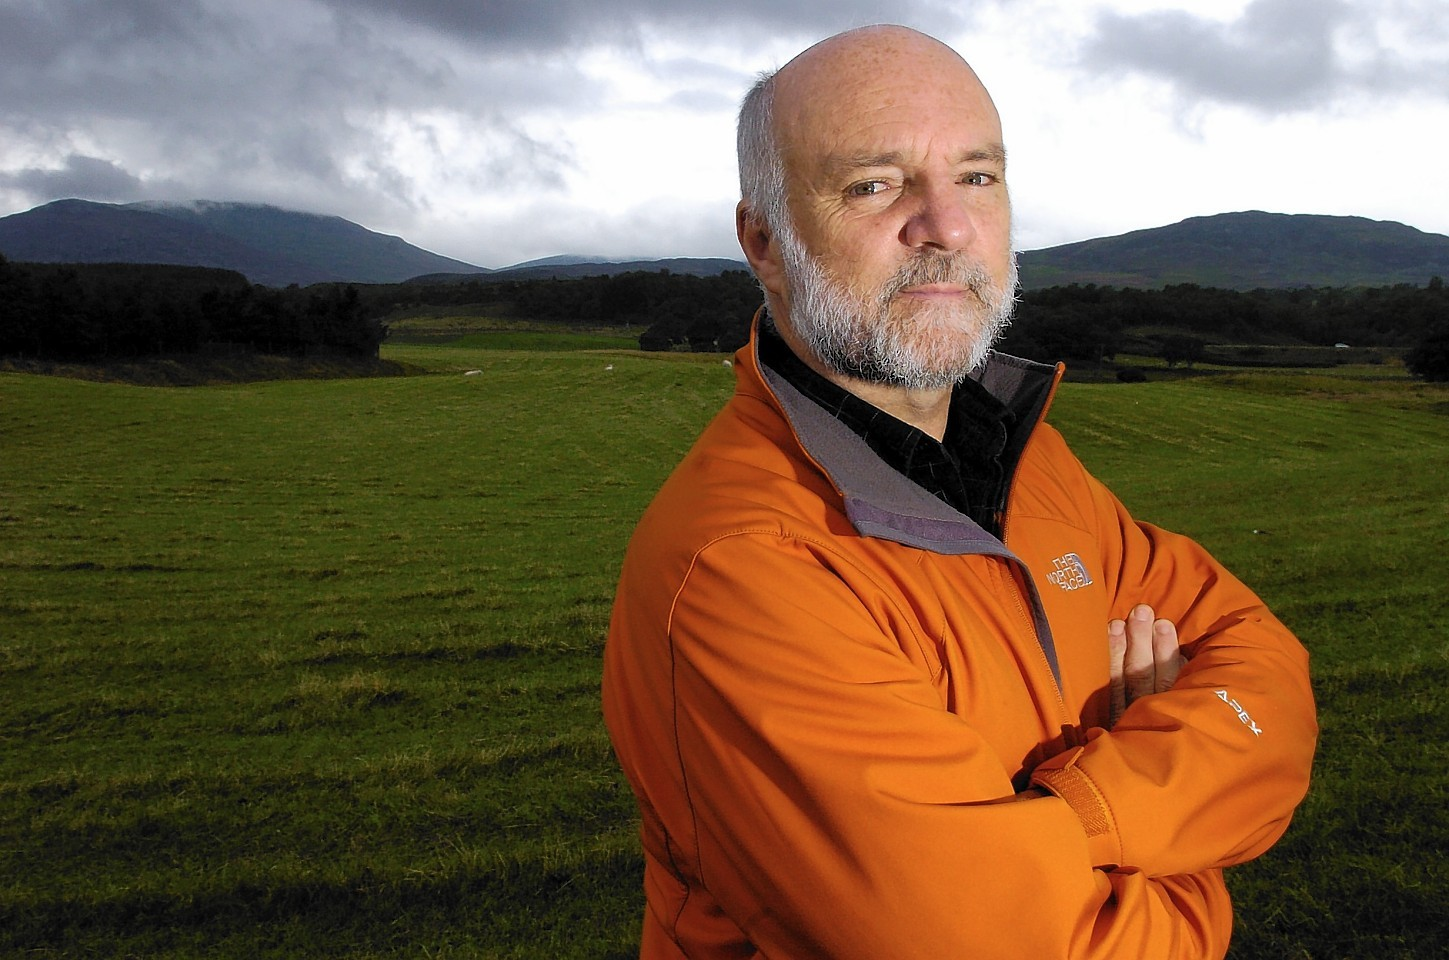 Broadcaster and writer Cameron McNeish